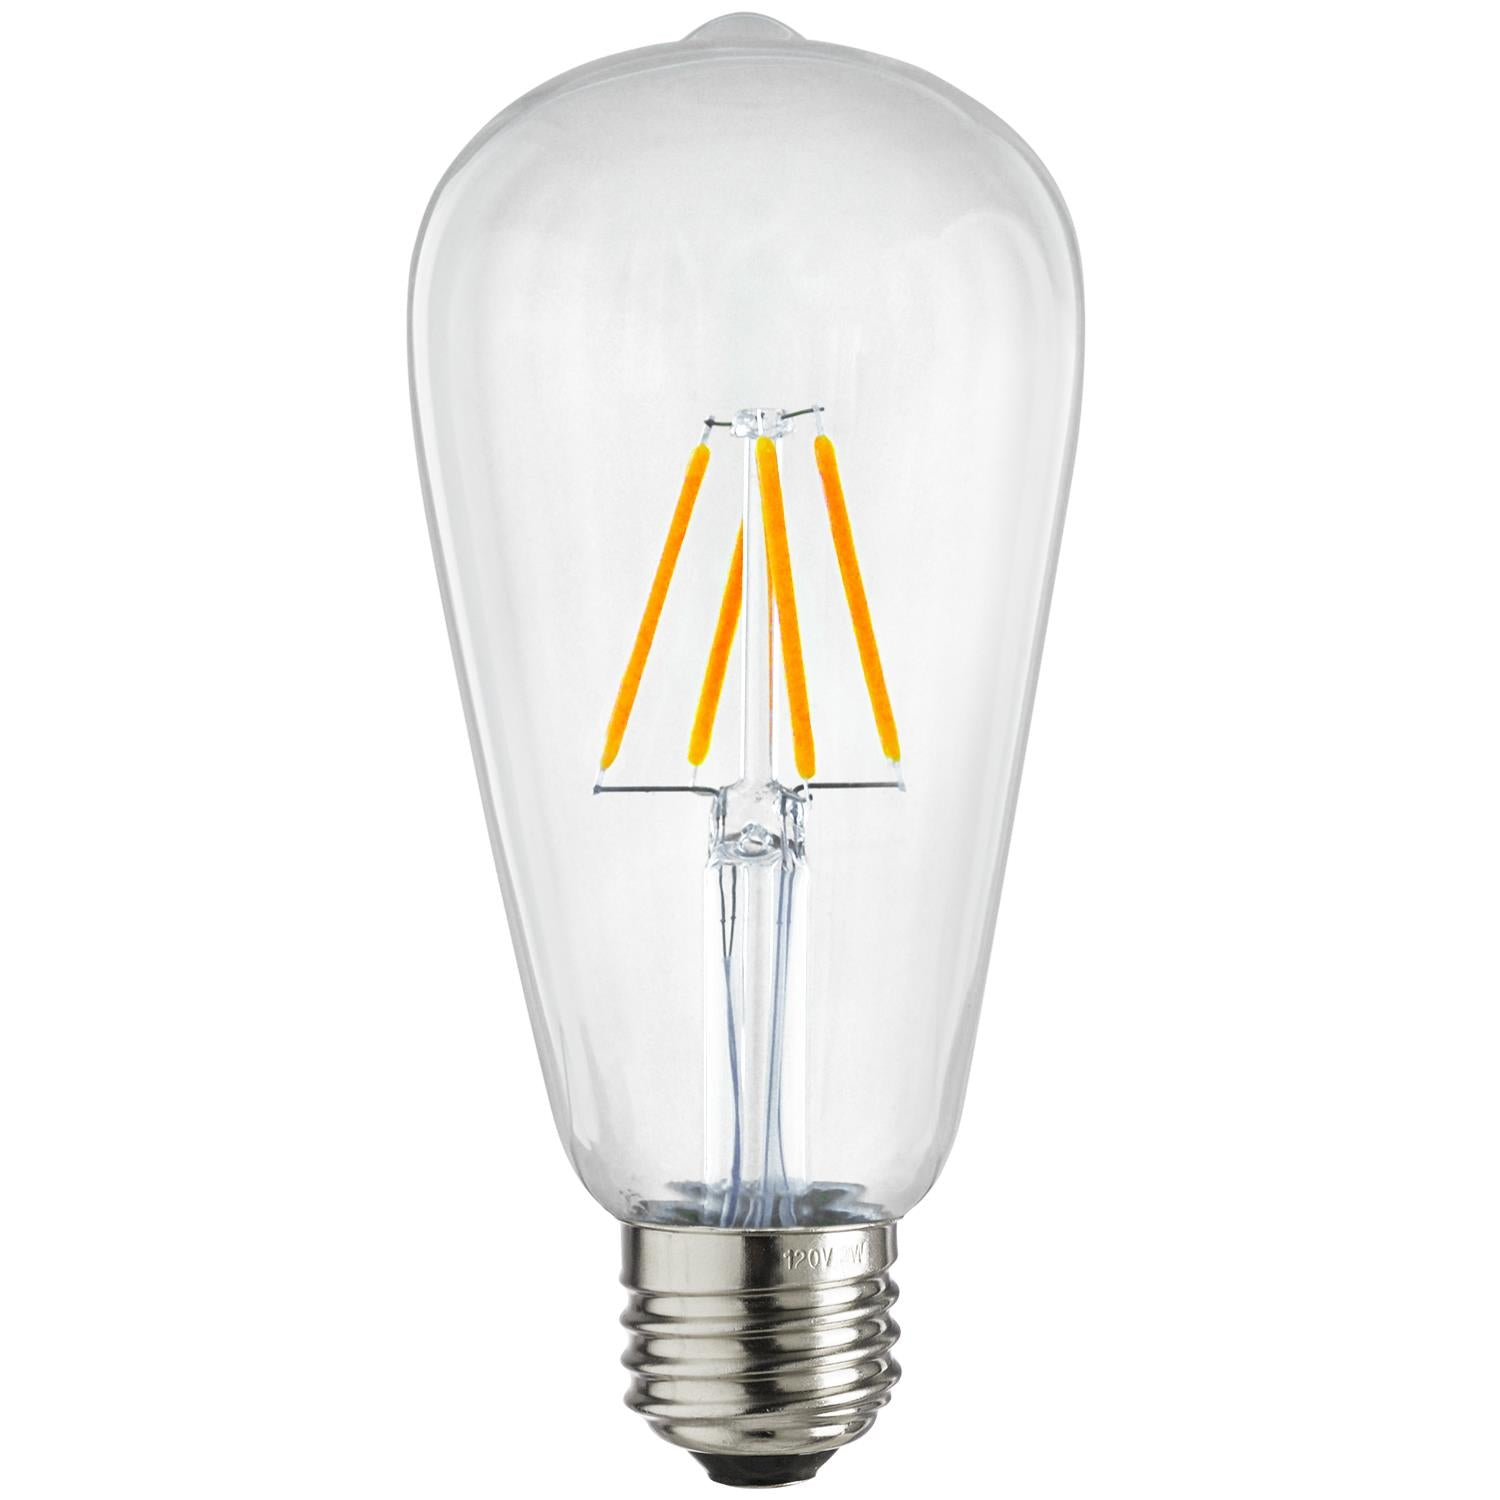 SUNLITE 80150-SU LED Vintage S19 Edison 4w Light Bulb 2700K Warm White